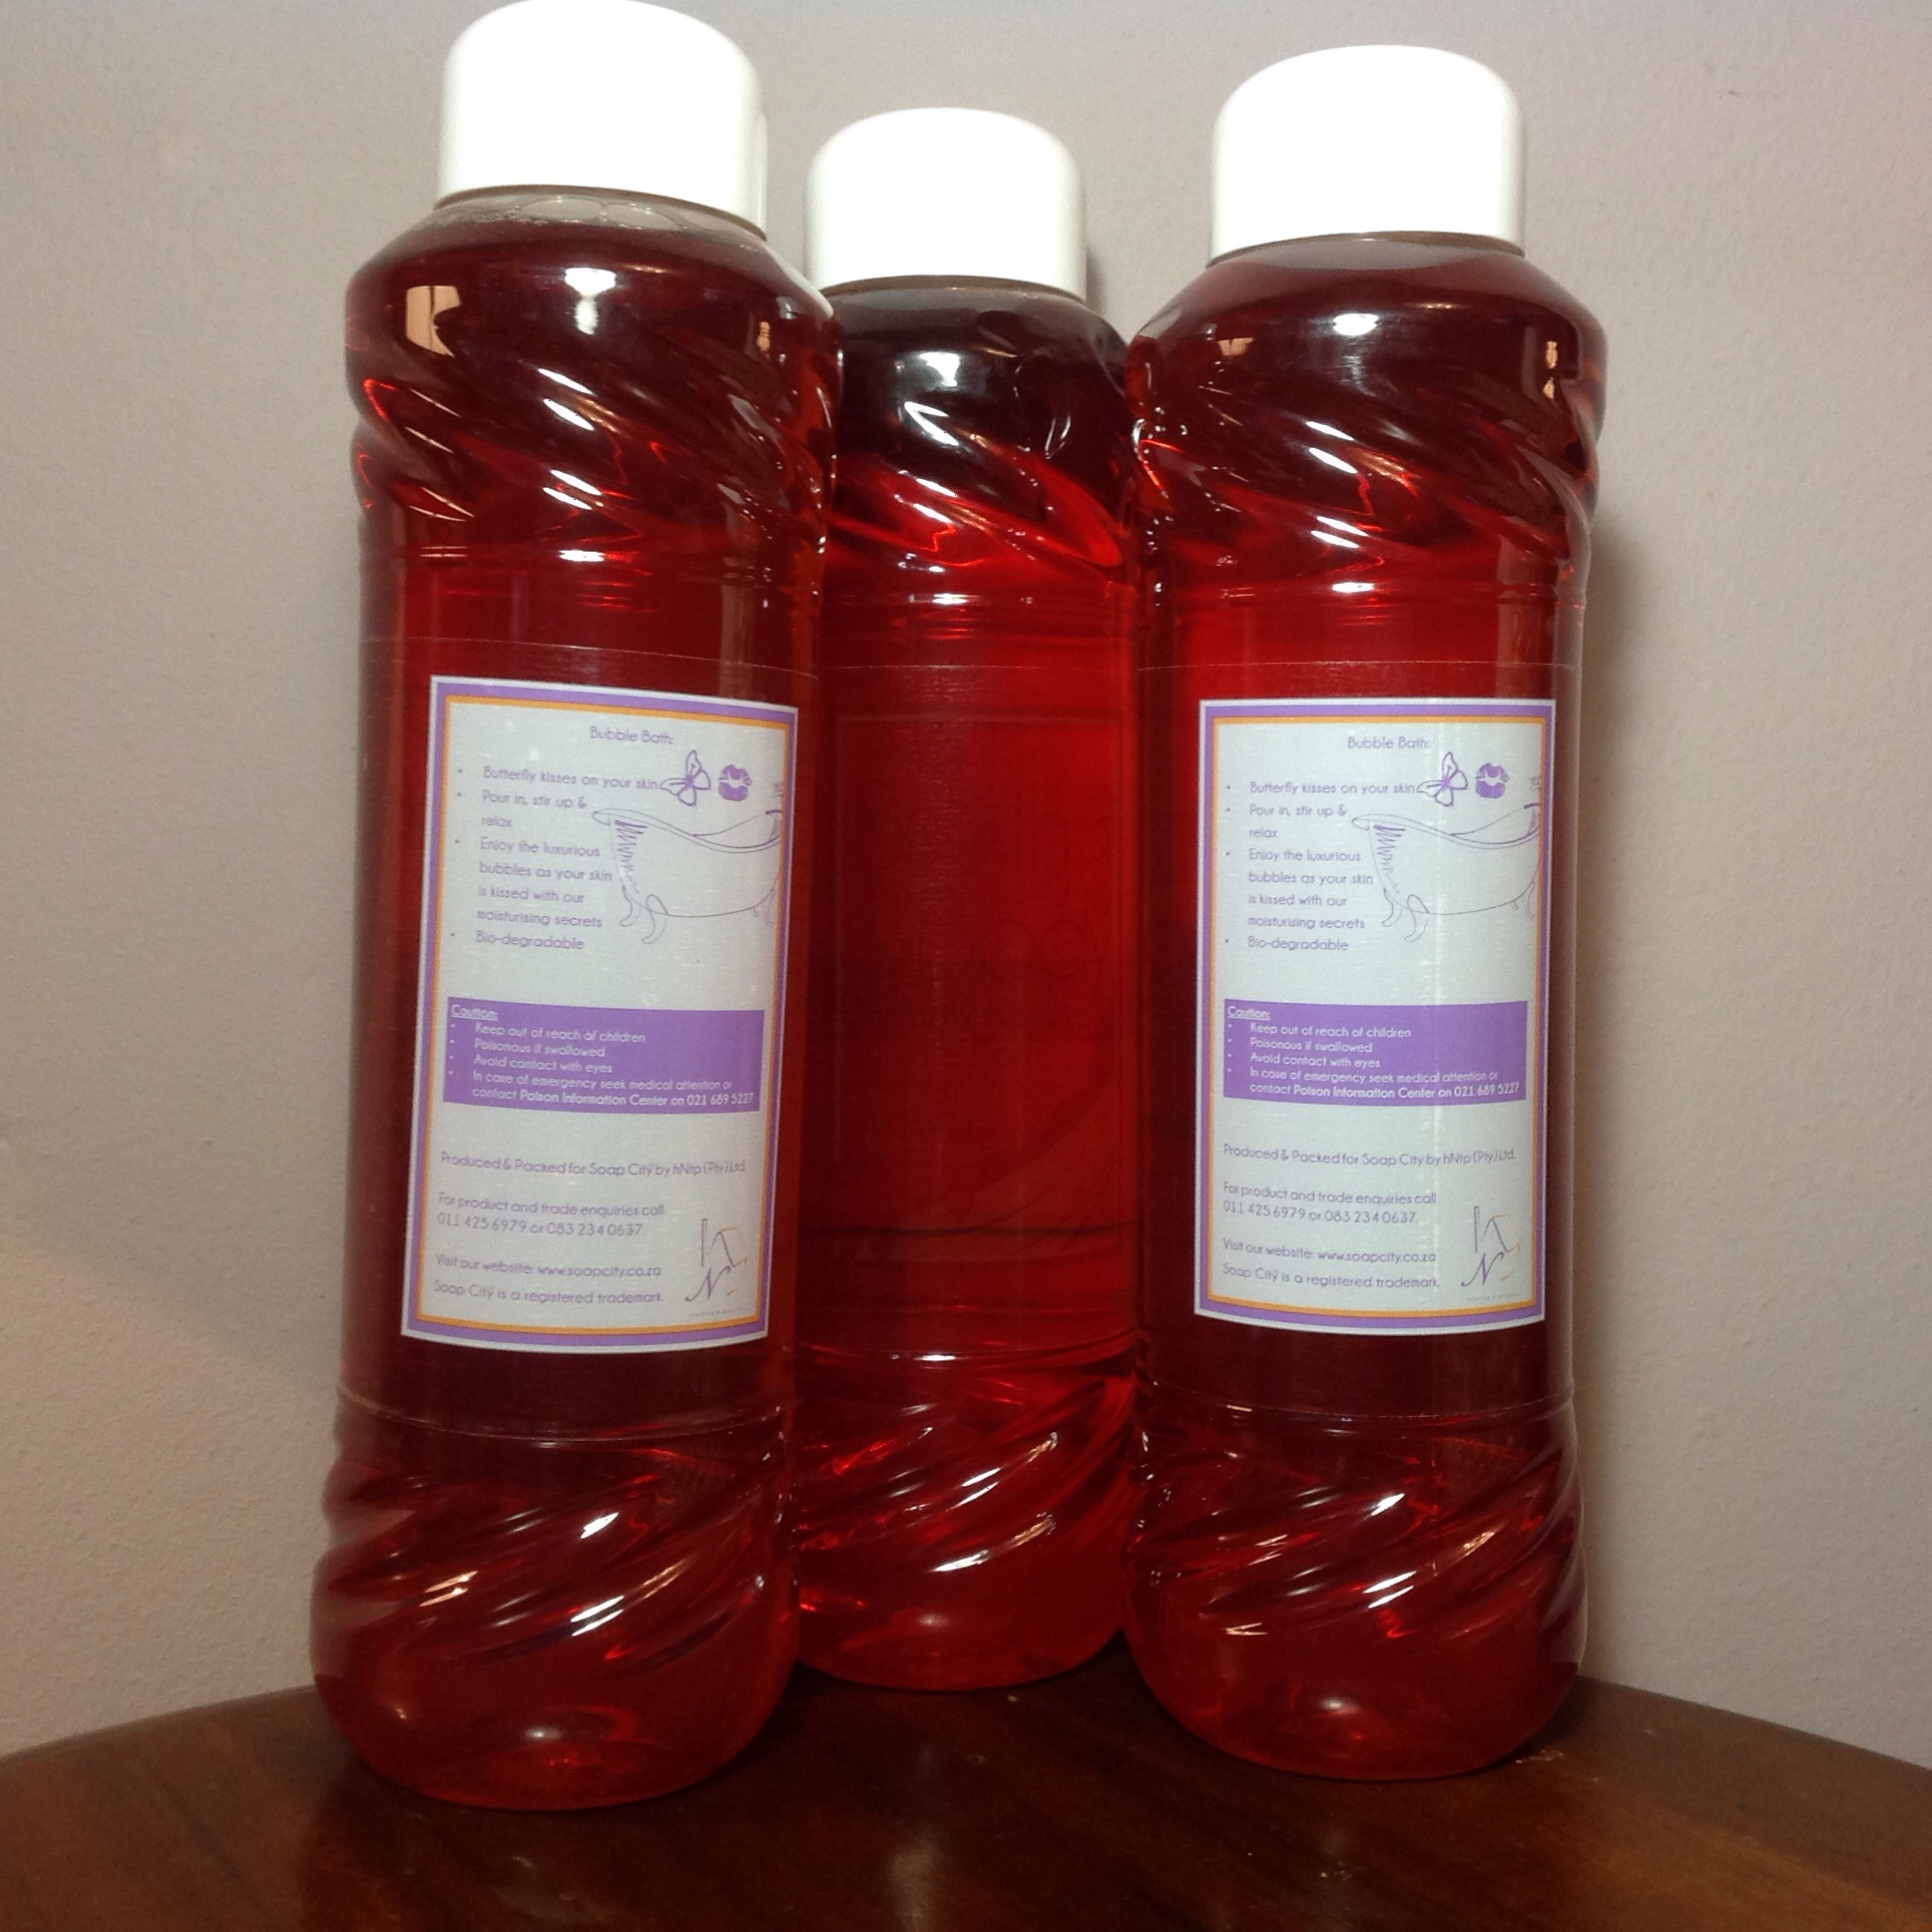 Permalink: http://www.soapcity.co.za/product/bubble-bath-berry-bliss/ Edit View Product Get Shortlink